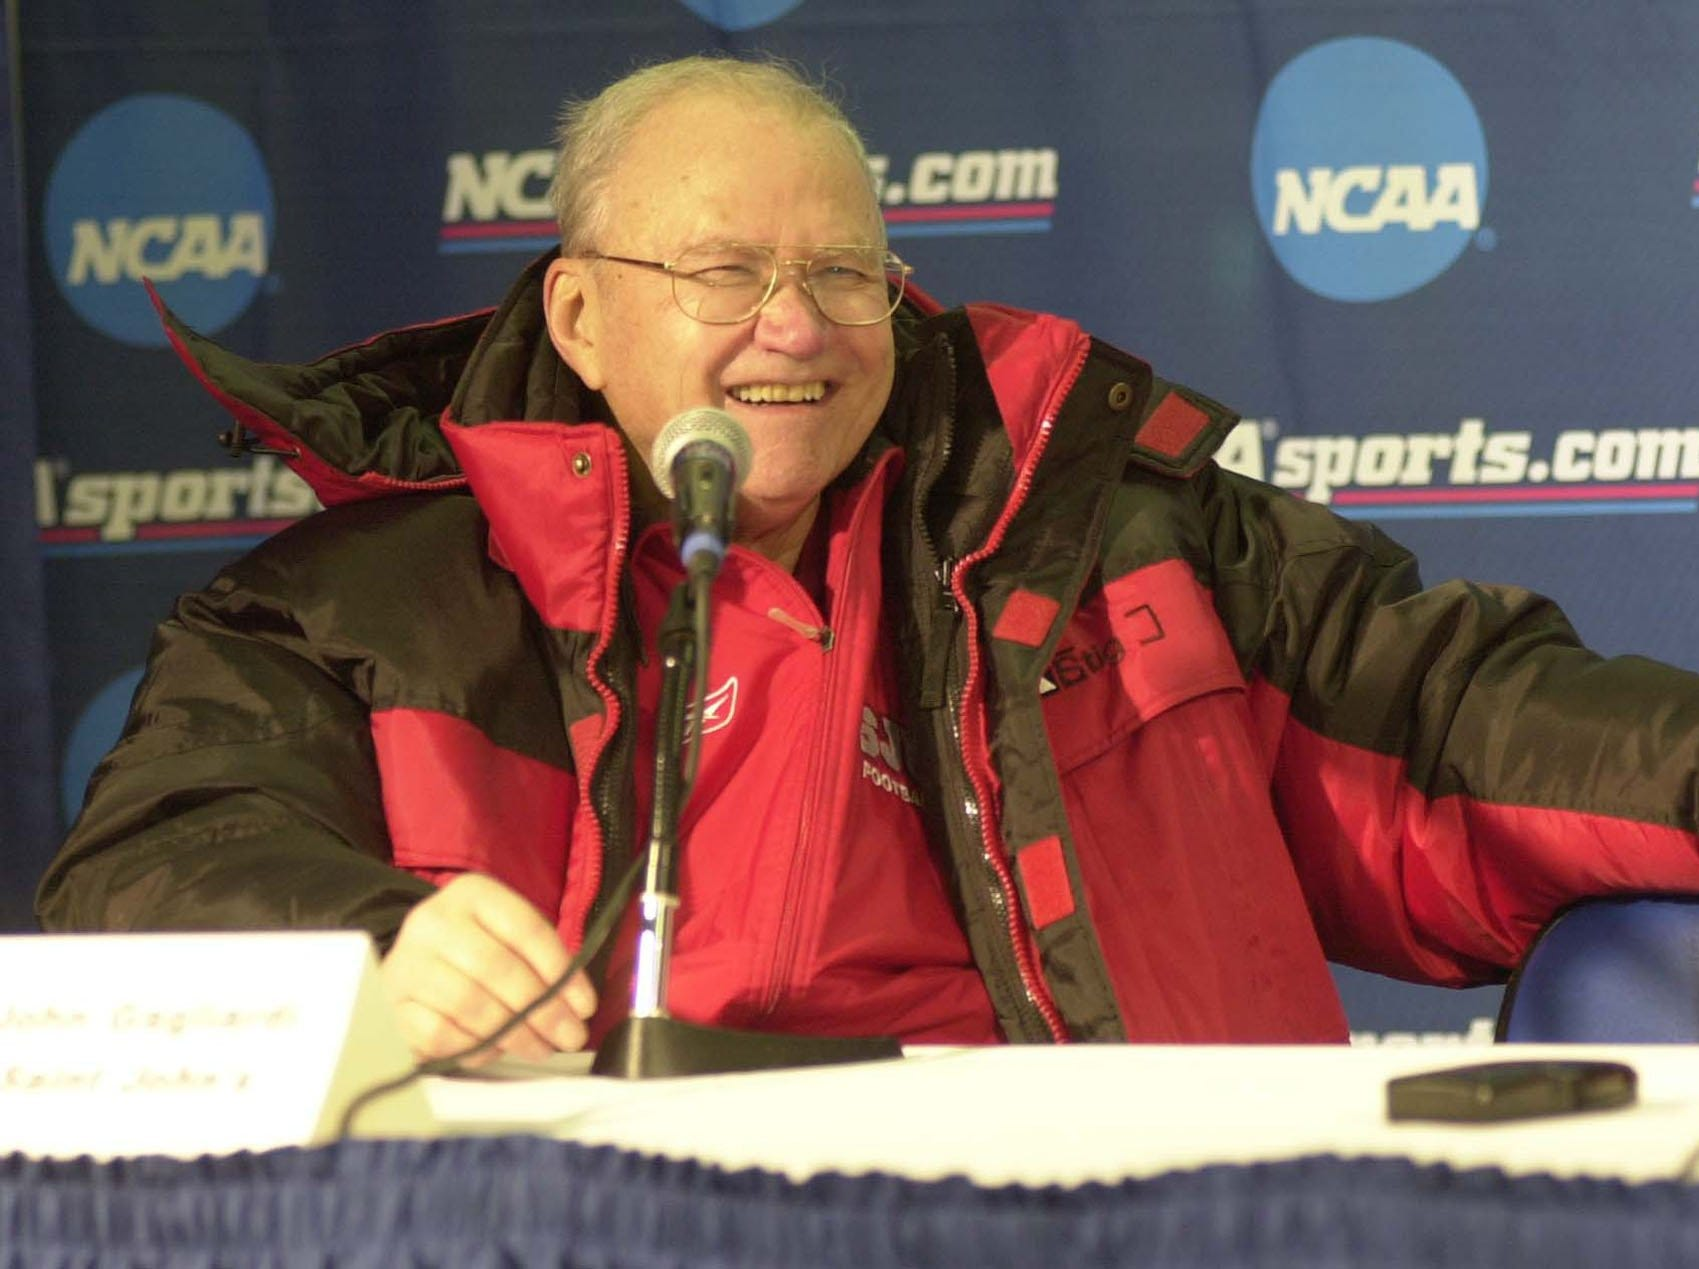 St. John's coach John Gagliardi allows himself a rare smile while talking with reporters at a press conference following the Johnnies' 24-6 win in the 2003 Stagg Bowl at Salem, Va.